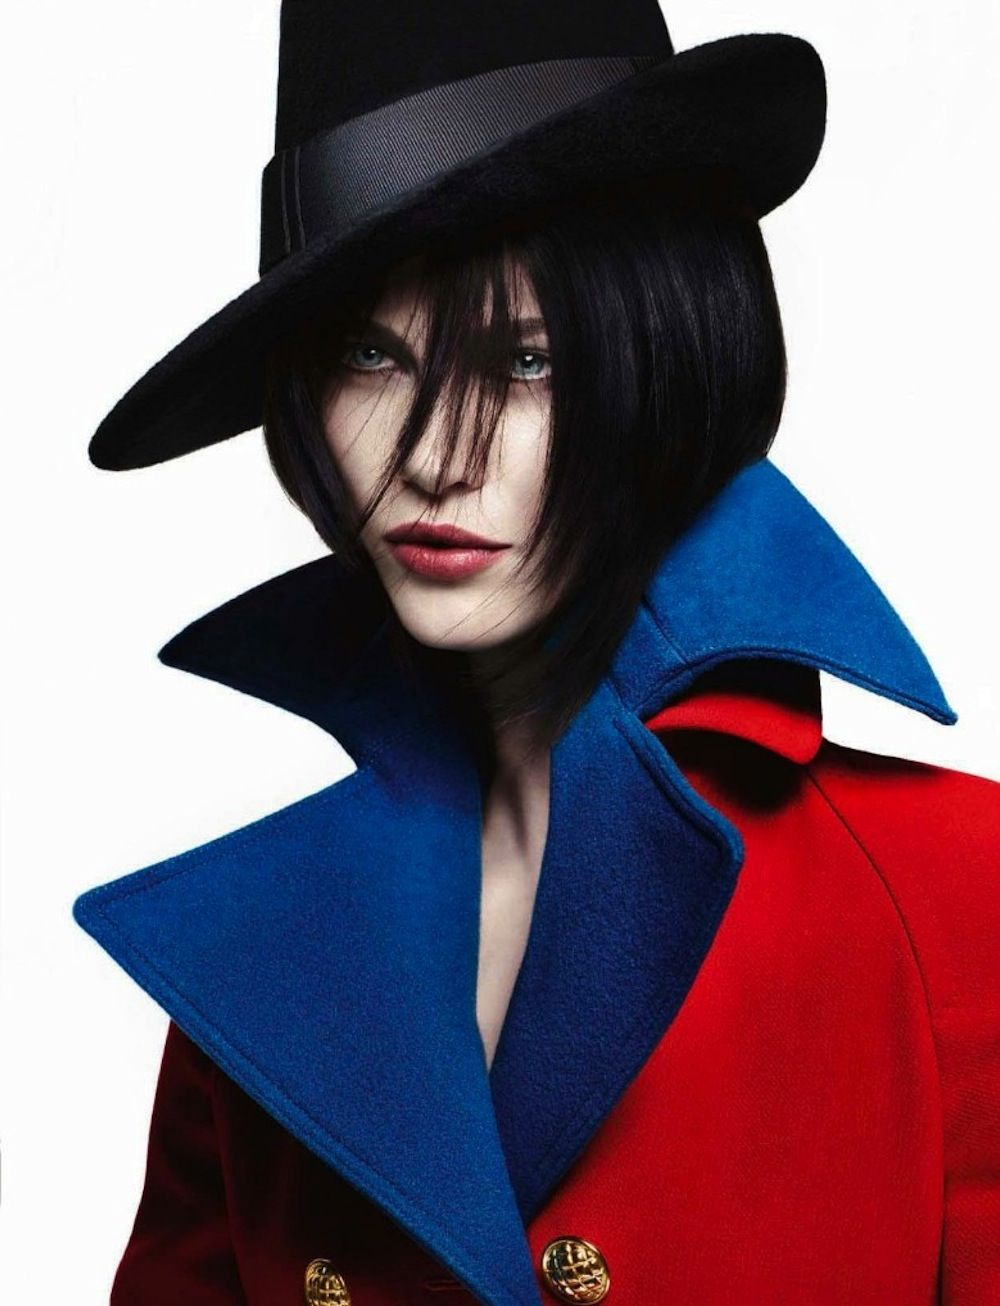 Grand chic: aymeline valade by solve sundsbo for vogue italia july 2012